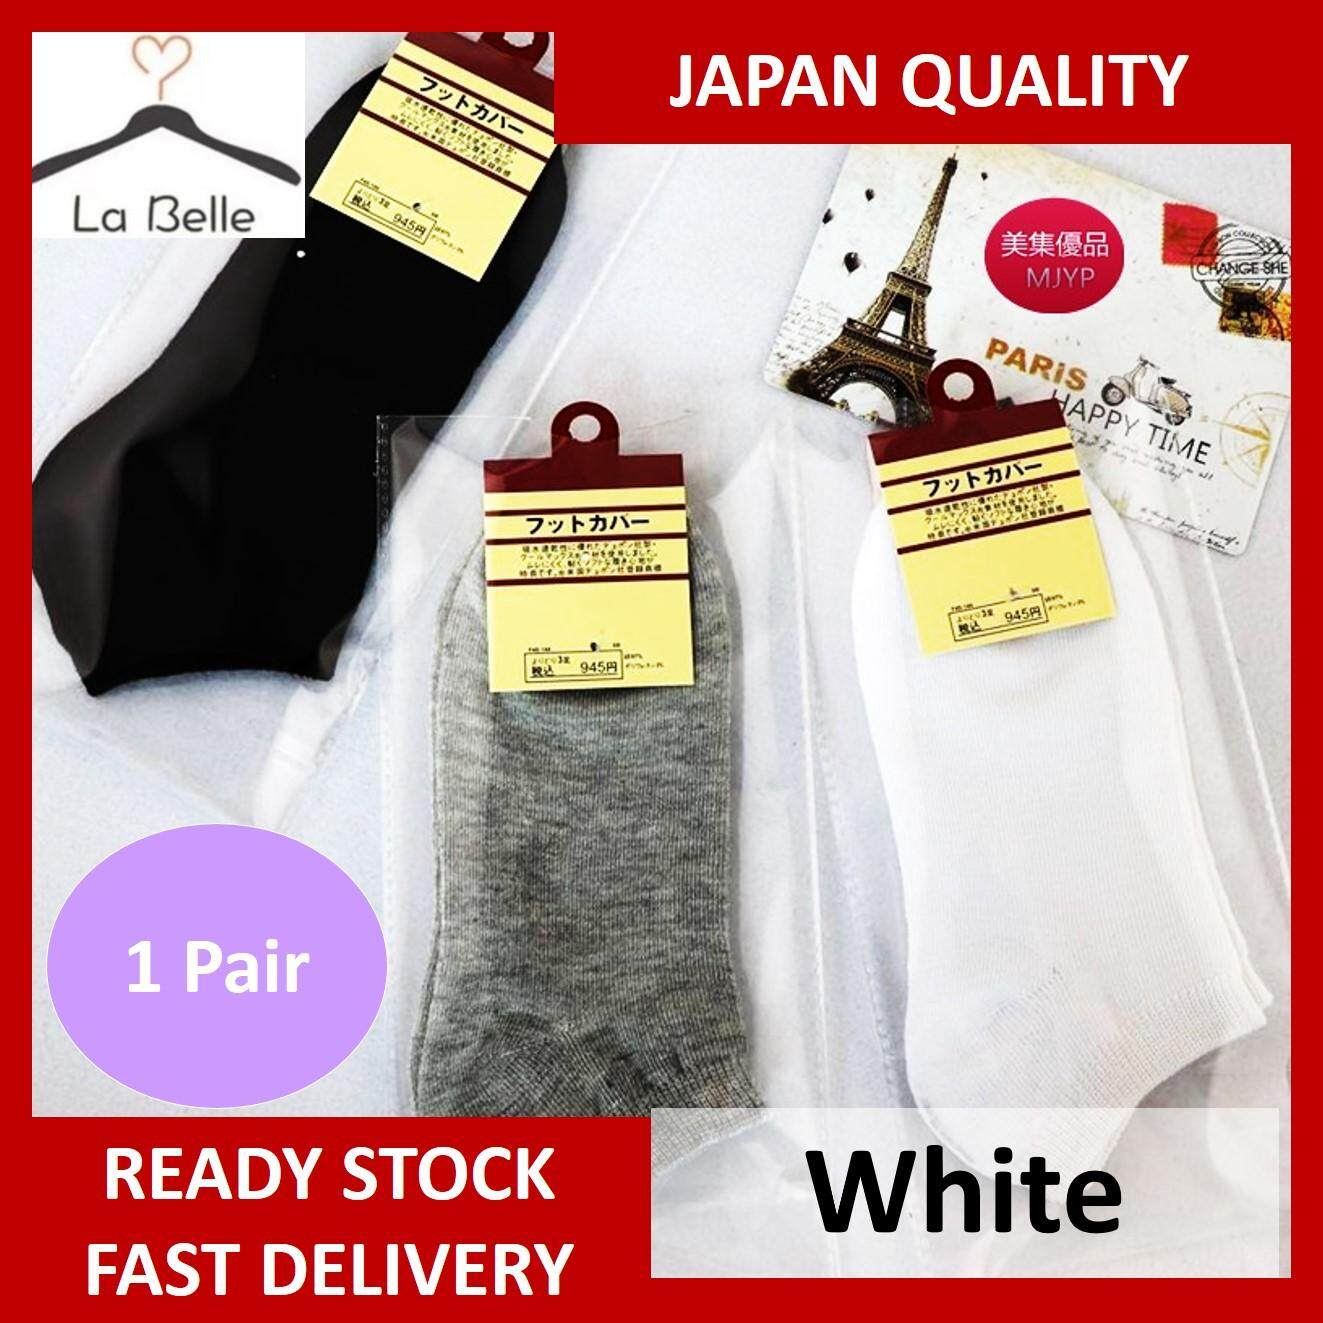 aab5671953c17e [ JAPAN QUALITY] LABELLE - 1 Pair Long / Mid Ankle Socks office socks school